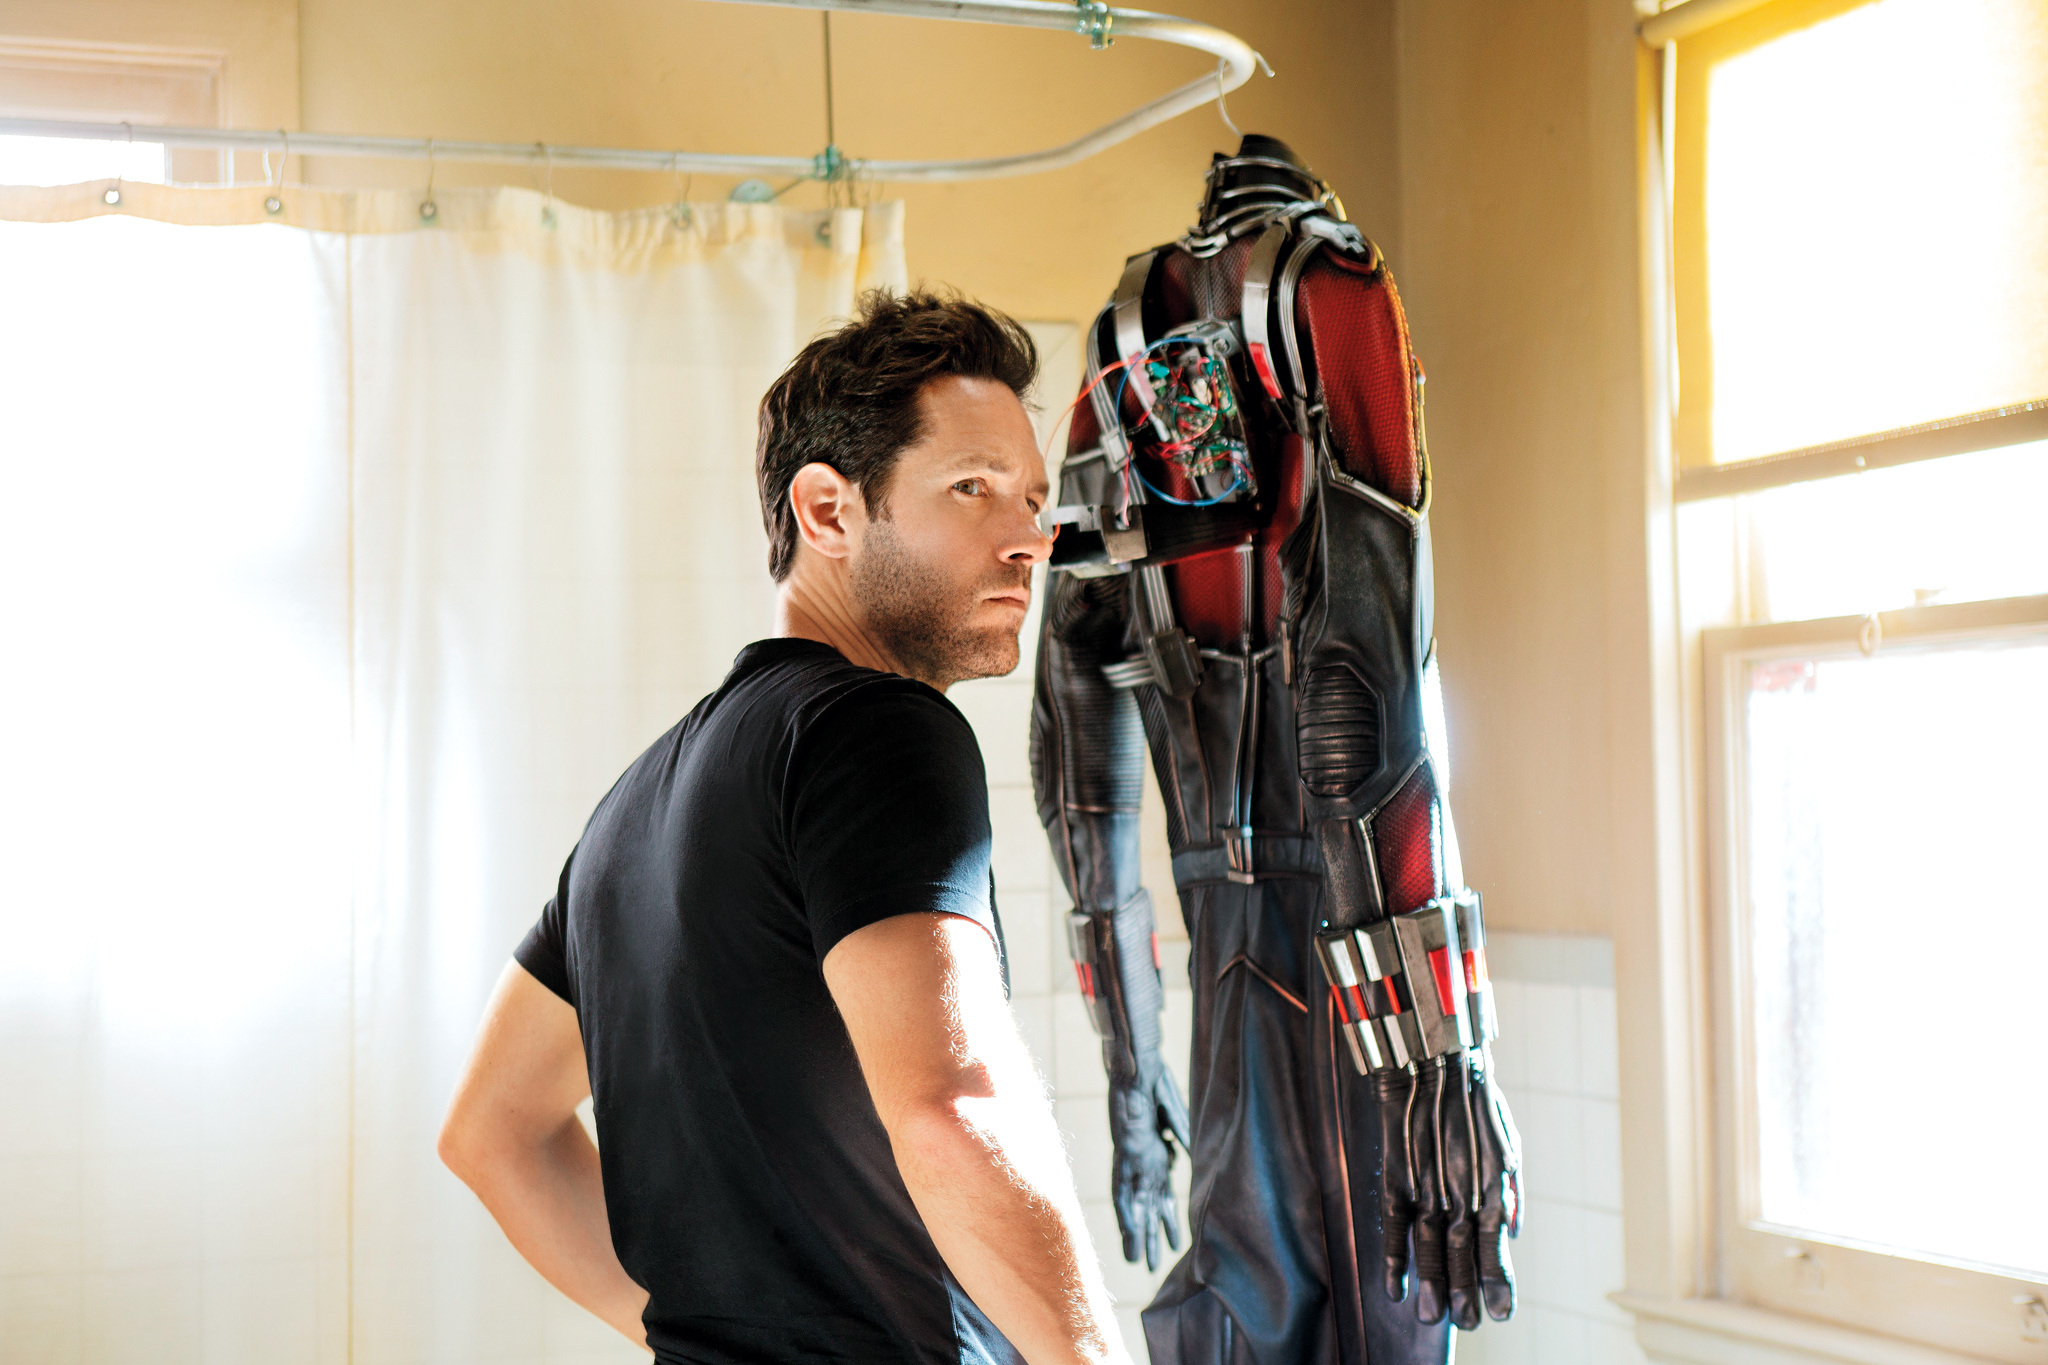 Exclusive: Ant-Man star Paul Rudd talks about the Clueless musical and filming Captain America 3